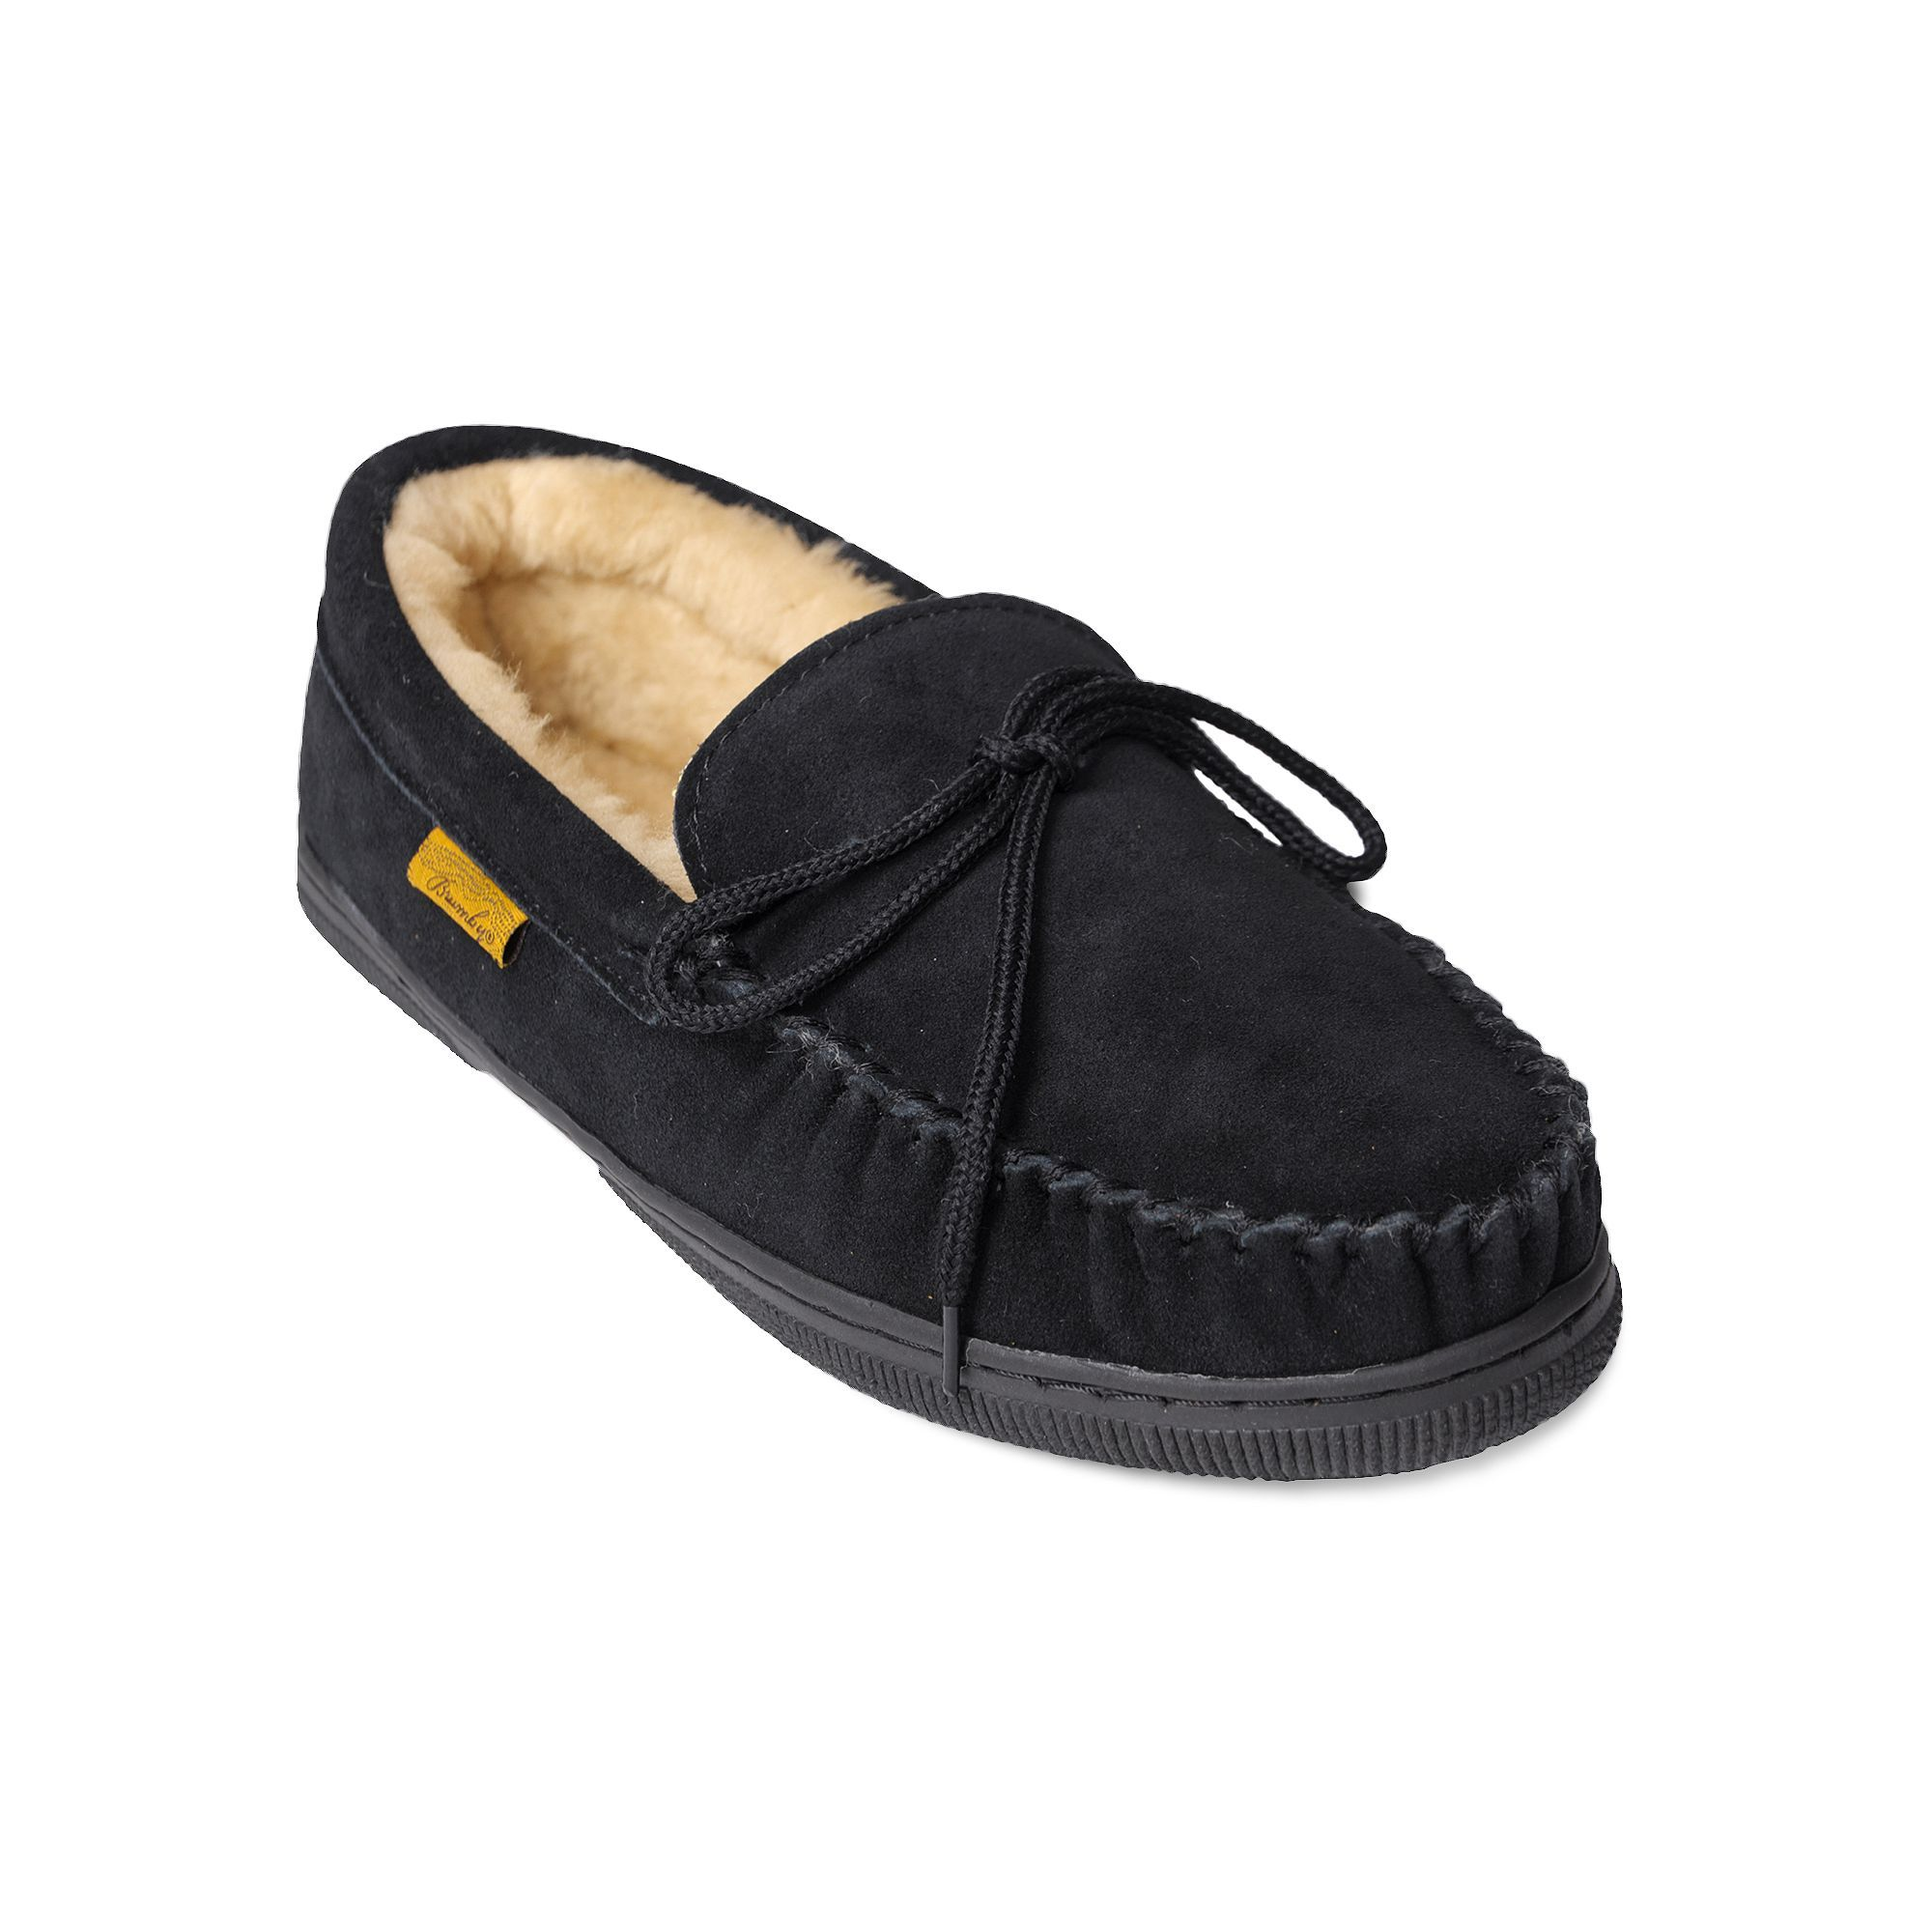 Brumby Mens Moccasin Slippers Size medium 10 Black